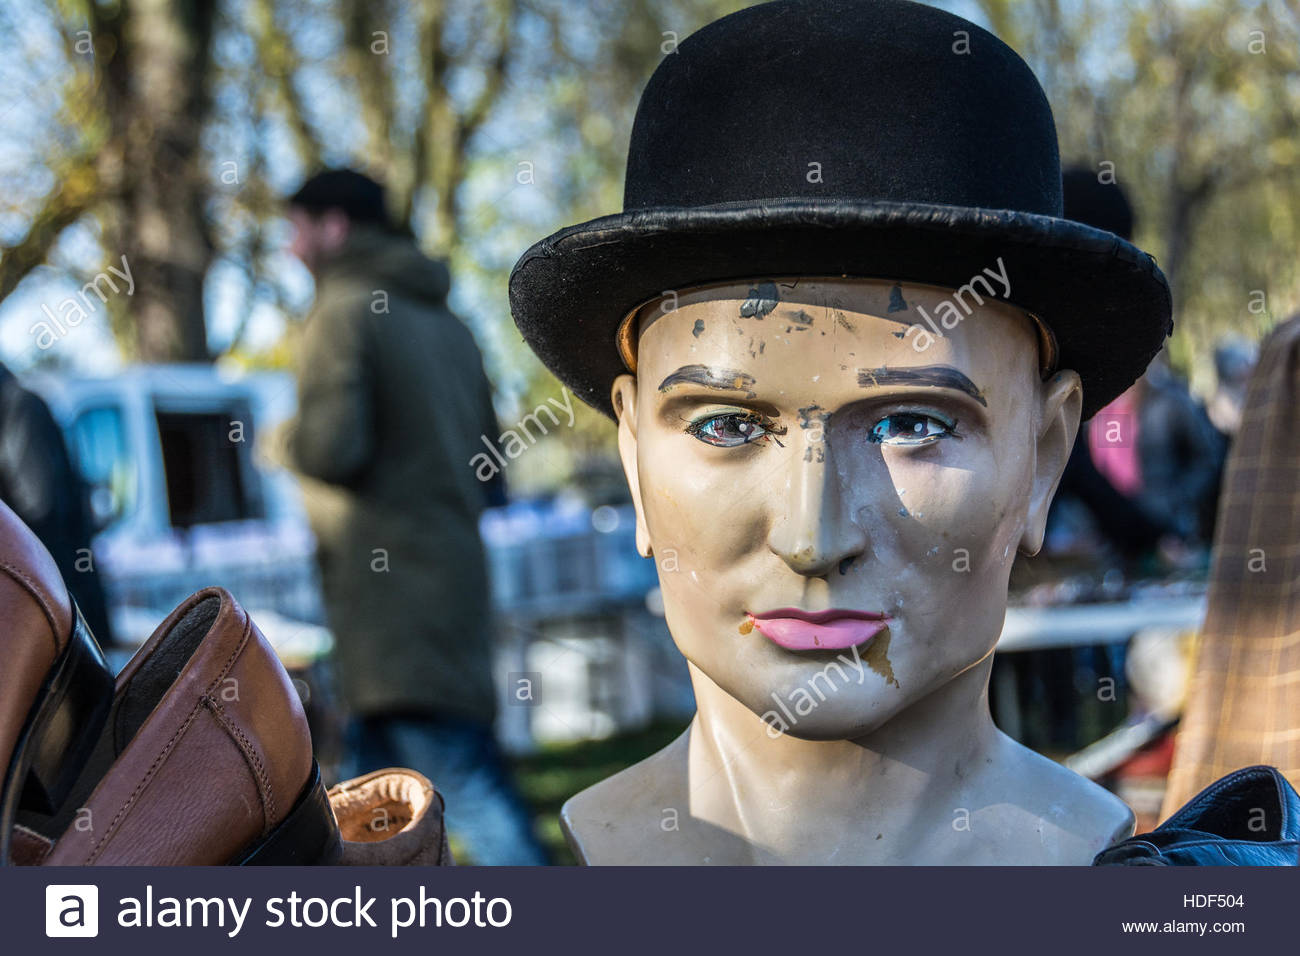 An Englishman s Bowler Hat at a car boot sale in London feef2e7ac4f